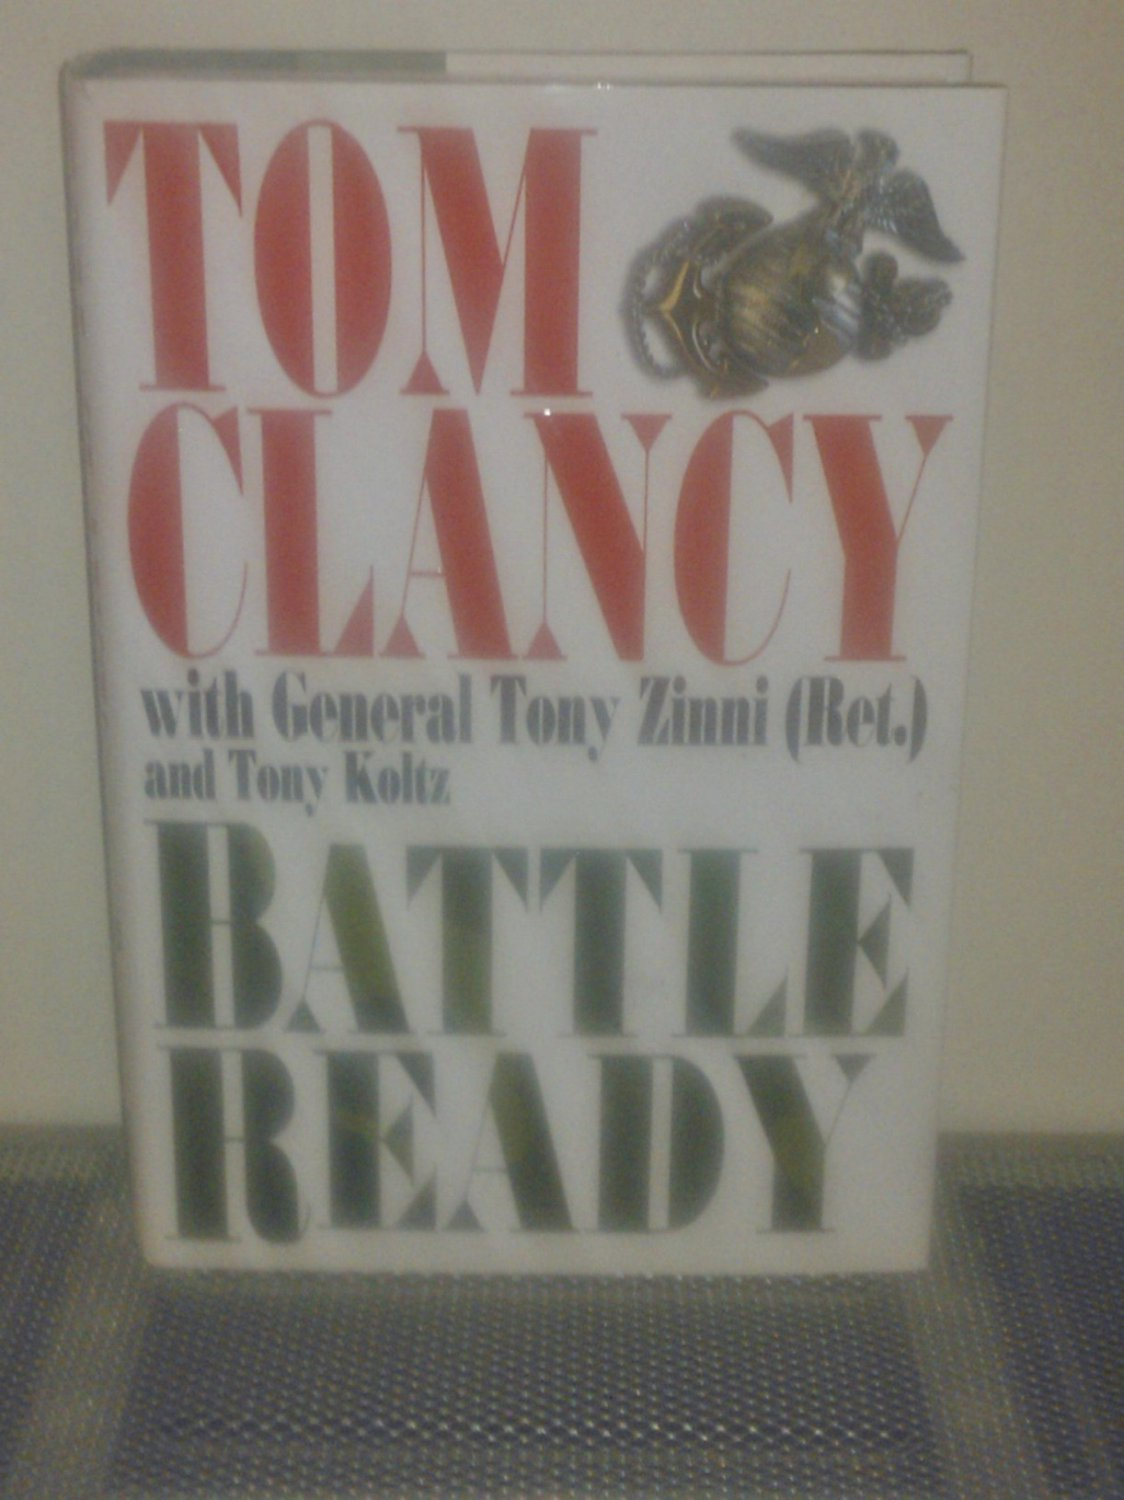 Battle Ready (Study in Command) by Tom Clancy (Hardcover 2004)